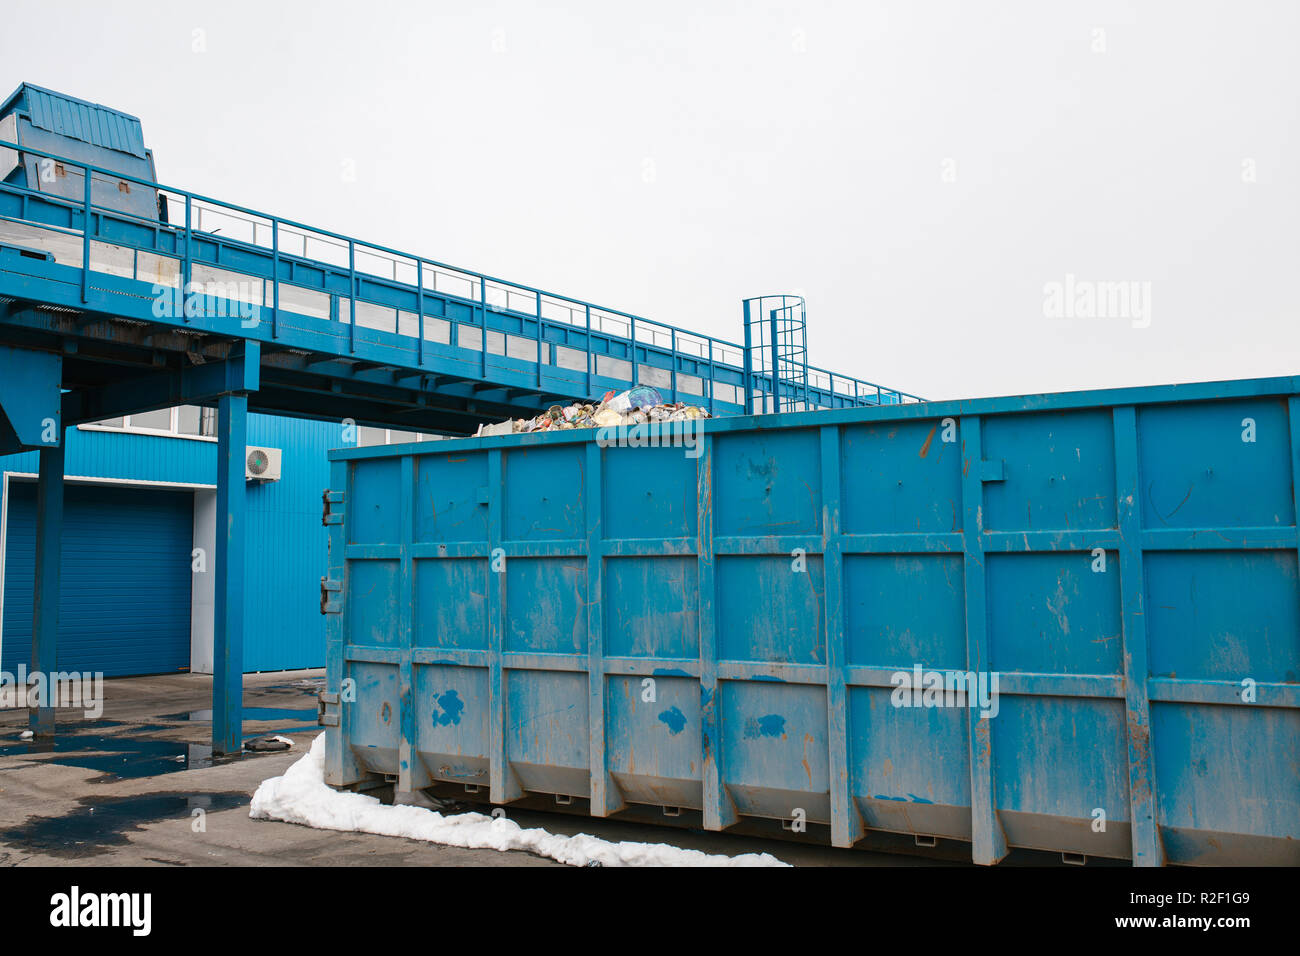 Container for waste storage at a waste processing plant for further processing and disposal. - Stock Image